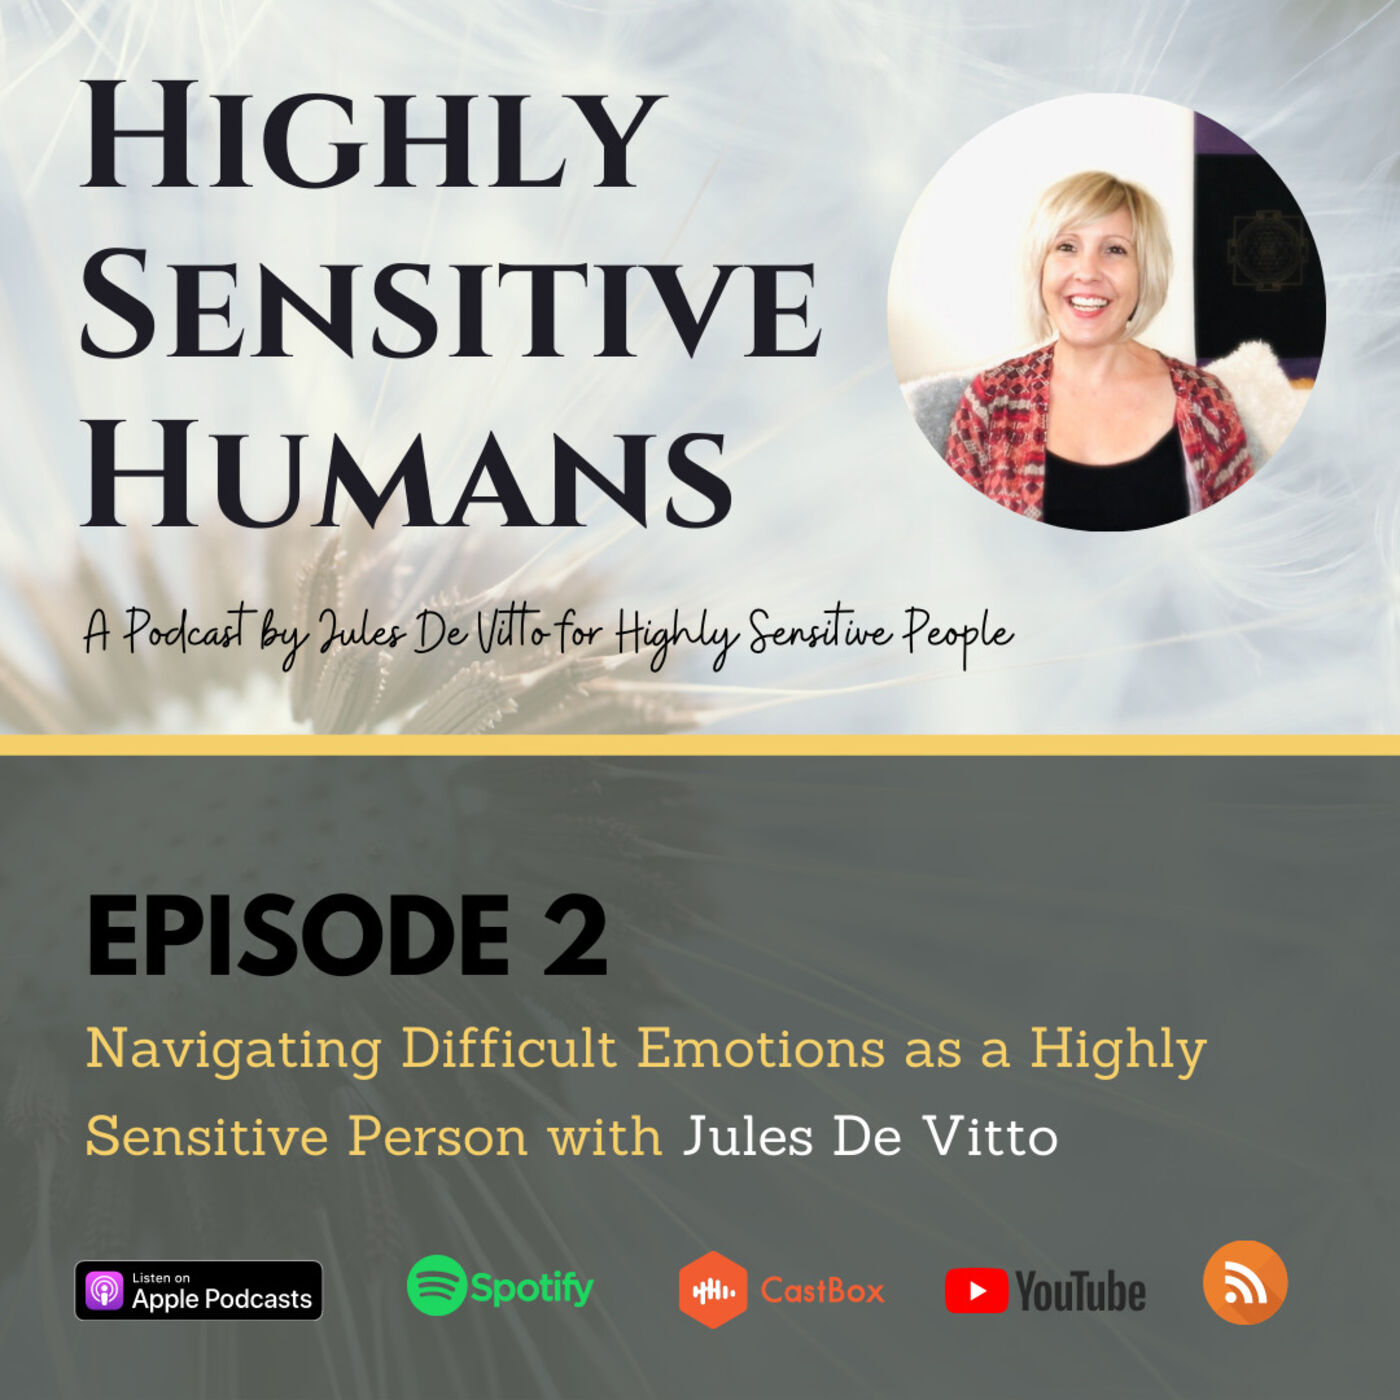 Navigating Difficult Emotions as a Highly Sensitive Person